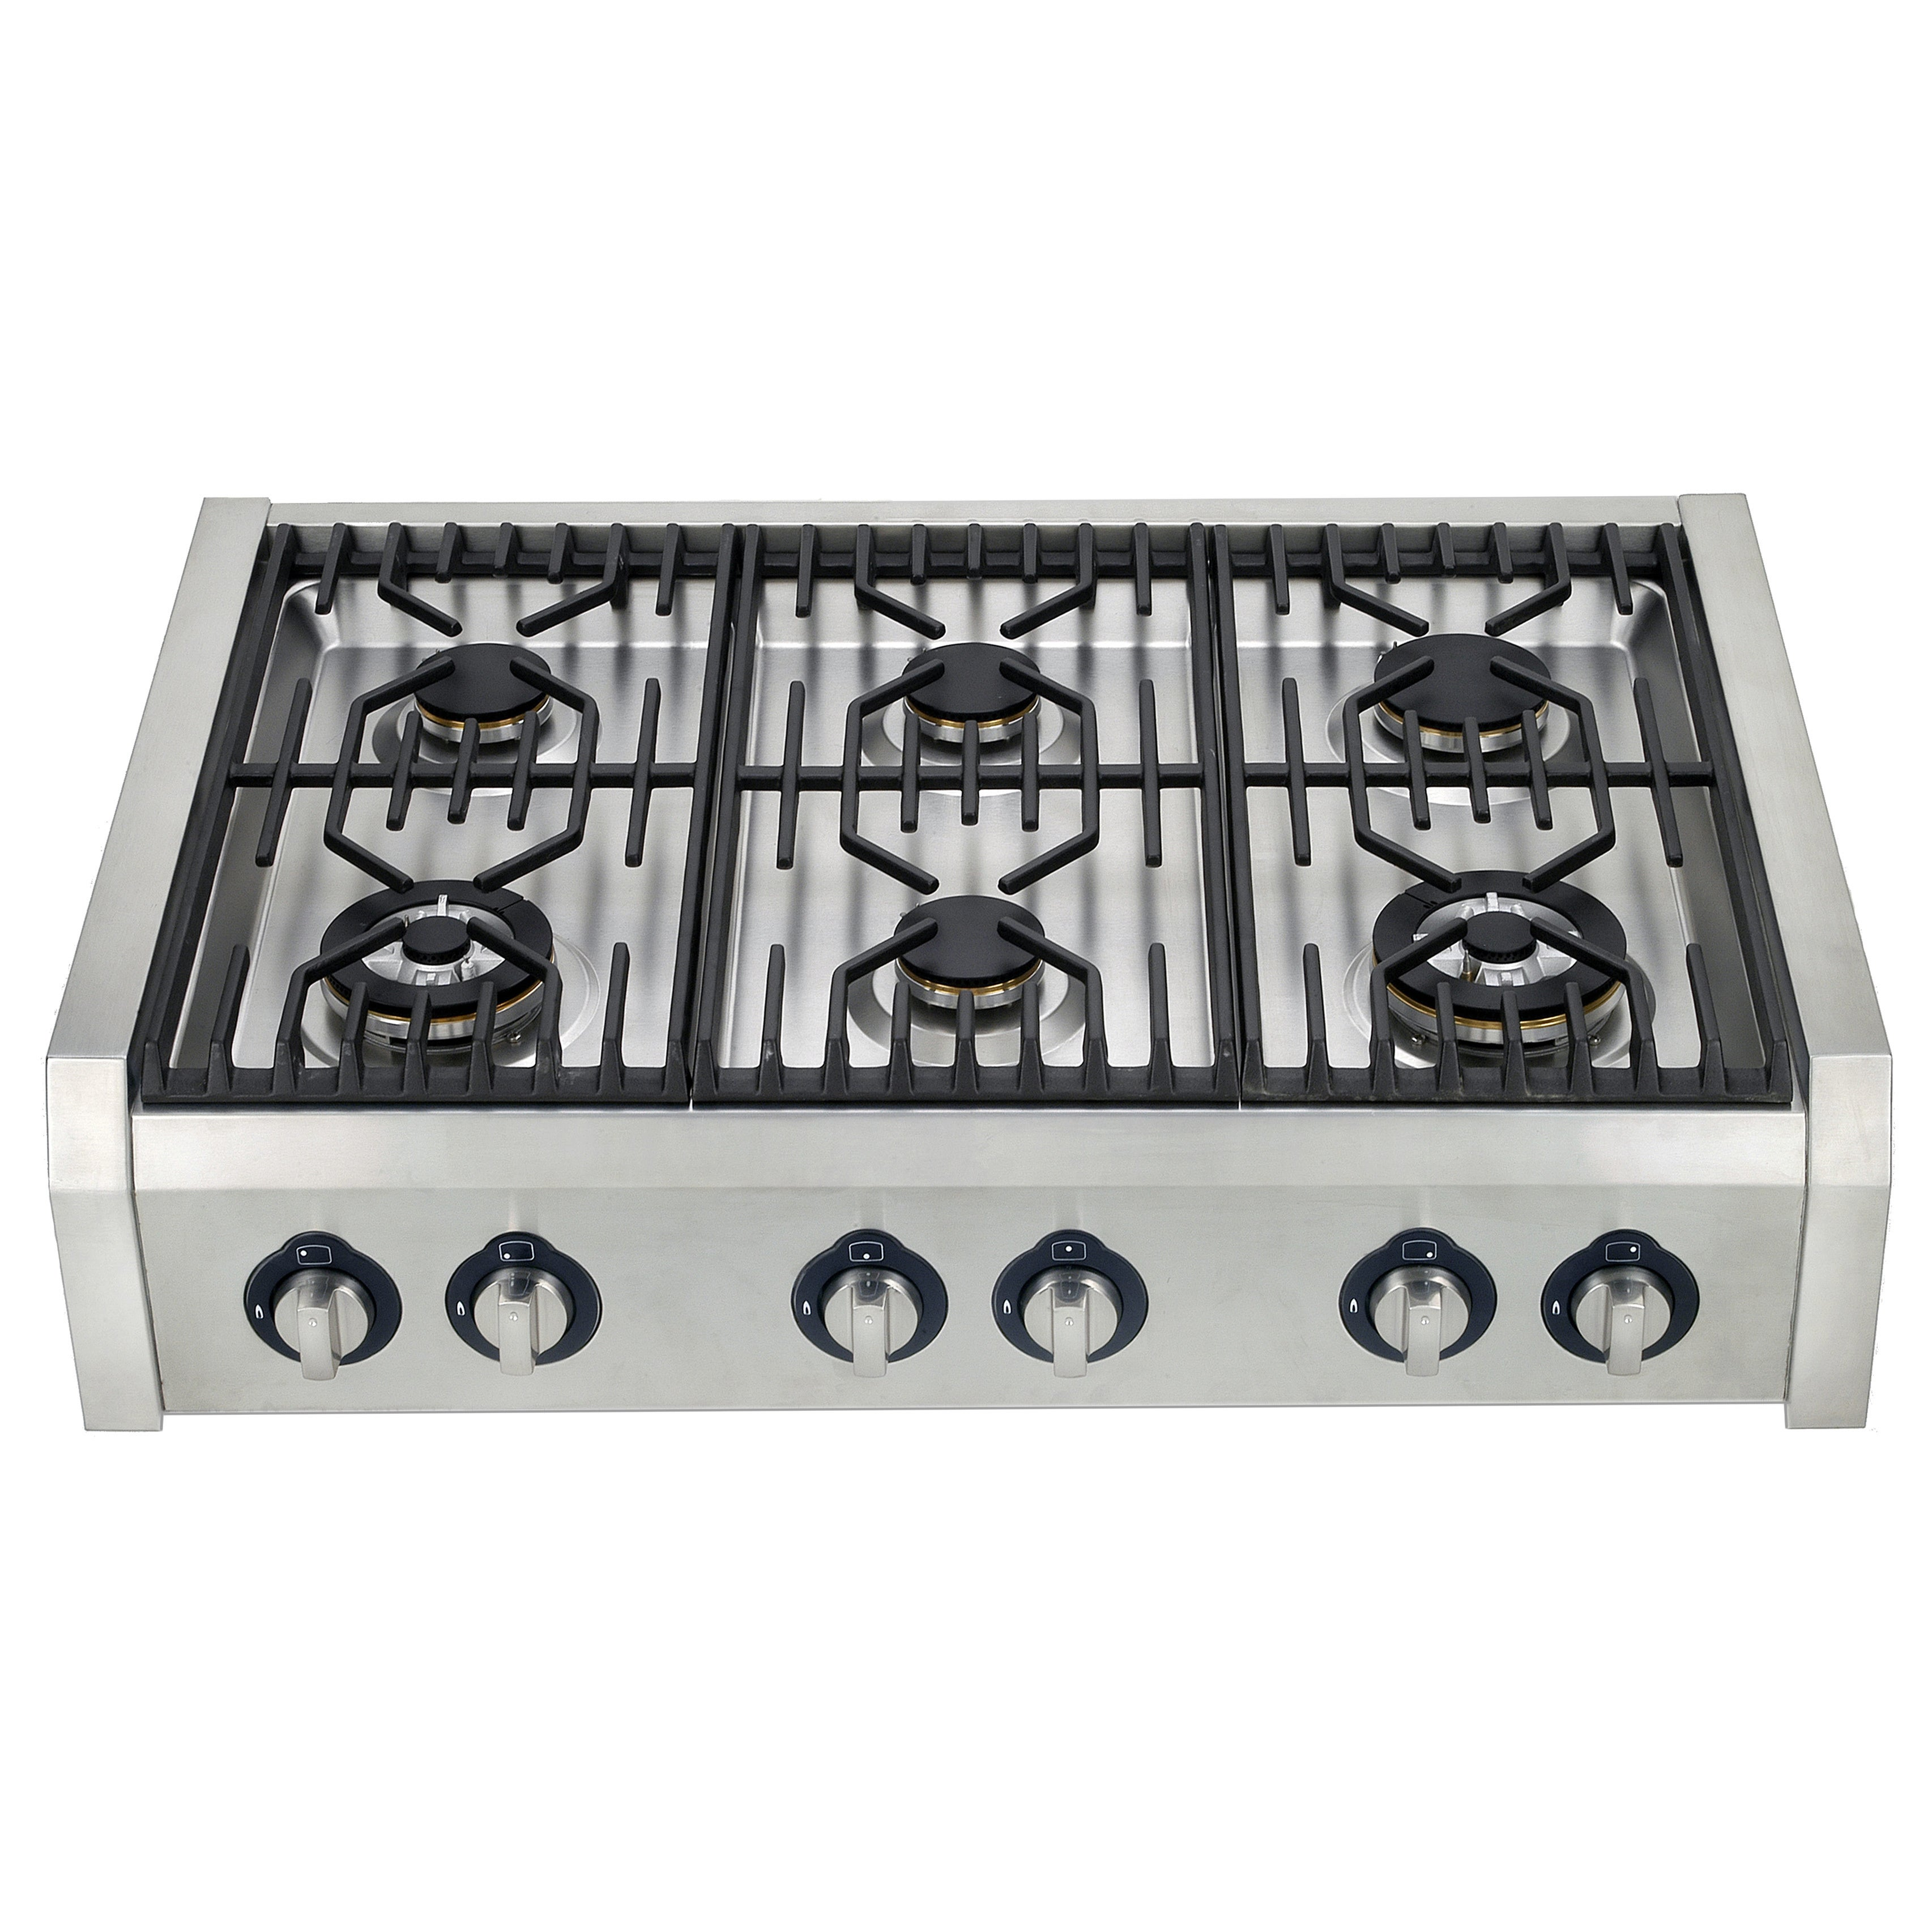 Professional Style 36 Inch Range Top